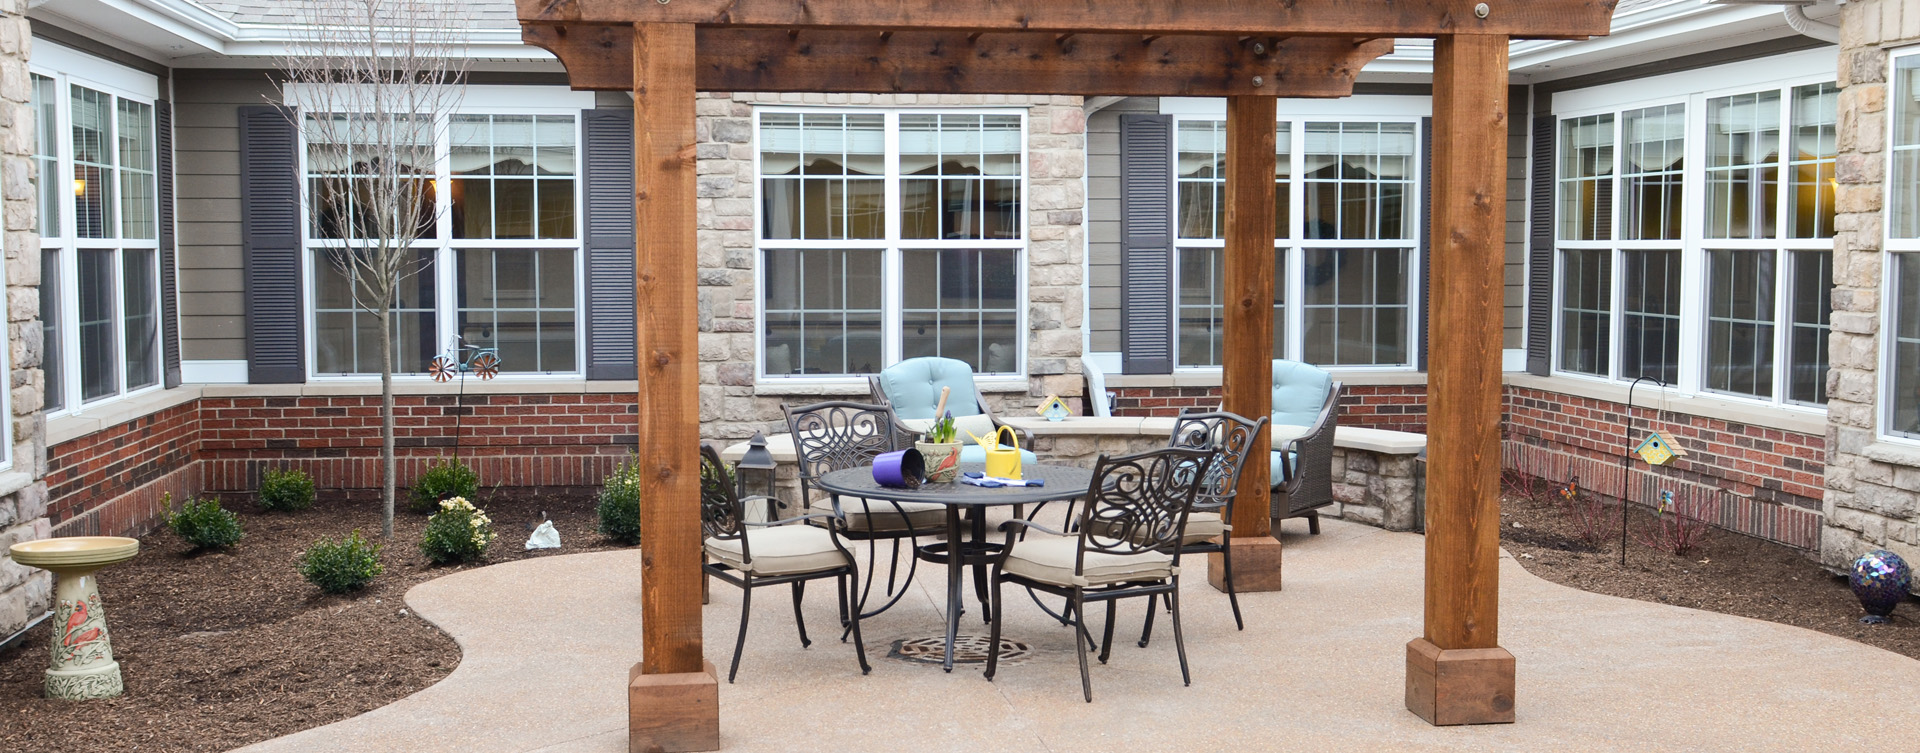 A single entrance courtyard gives residents with dementia the opportunity to be safe outside at Bickford of Gurnee